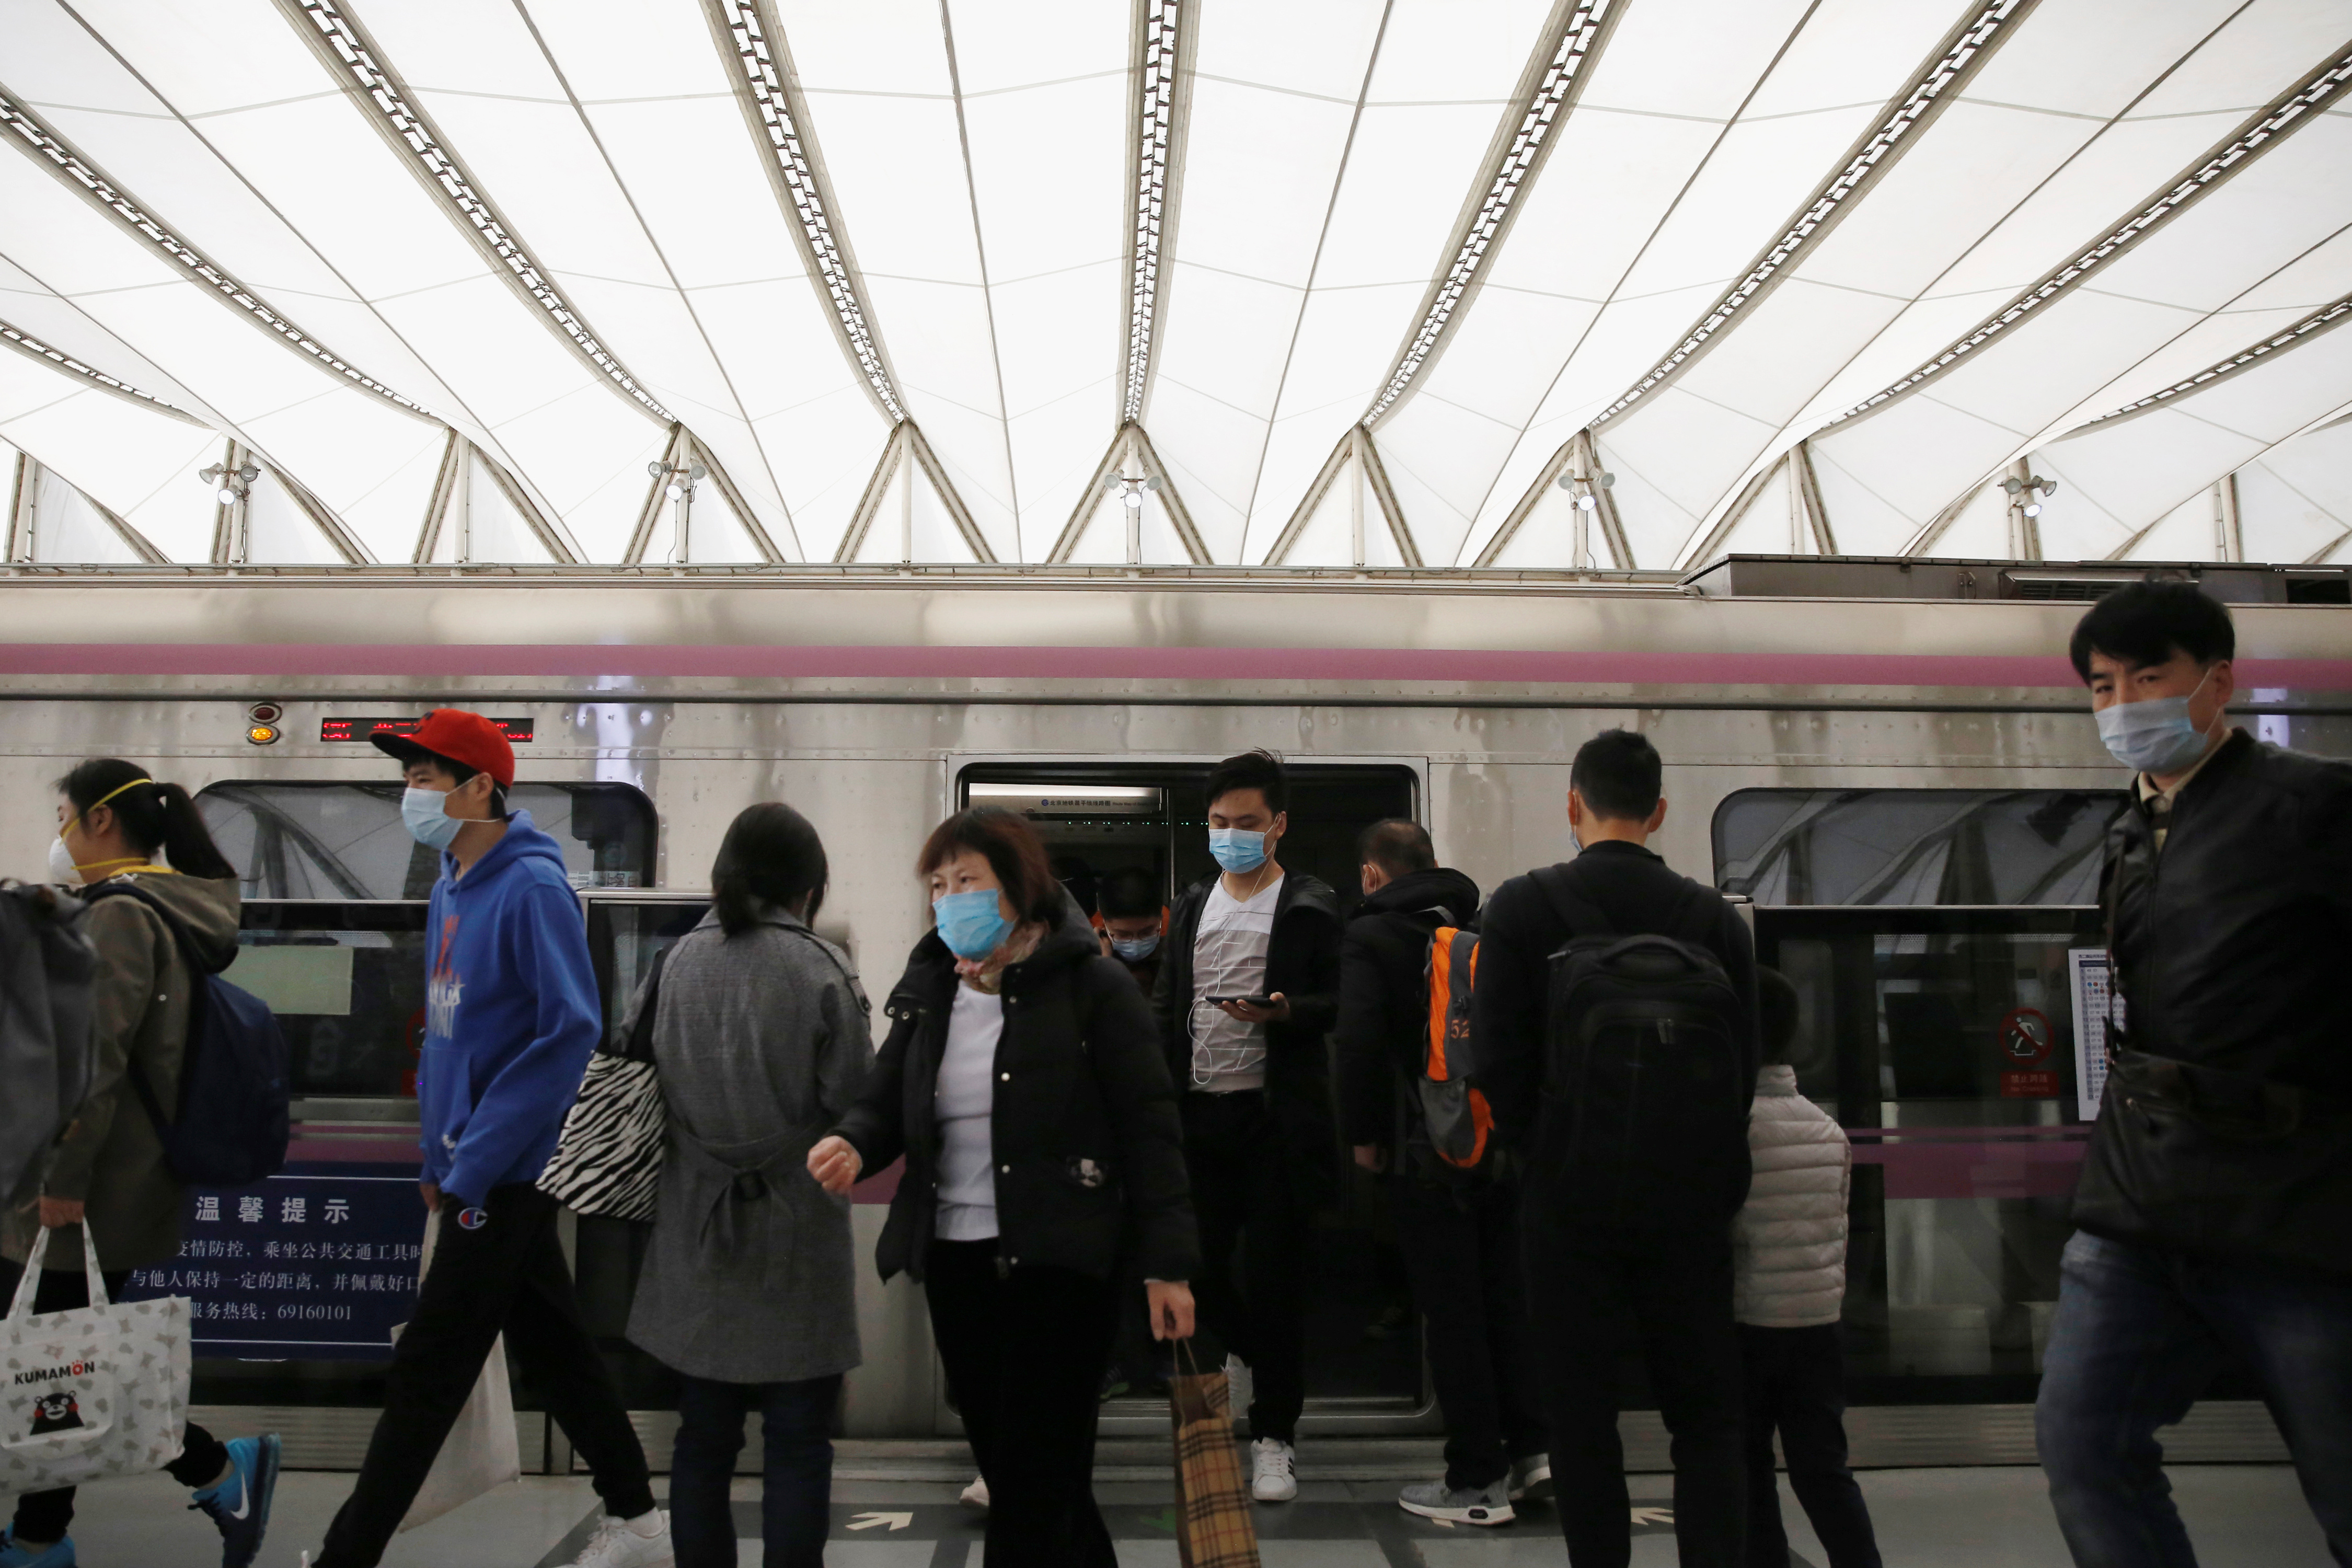 People wearing face masks get off a subway train at a subway station during morning rush hour in Beijing, as the spread of the novel coronavirus disease (COVID-19) continues in the country, in China, on April 7, 2020. Photo: Reuters